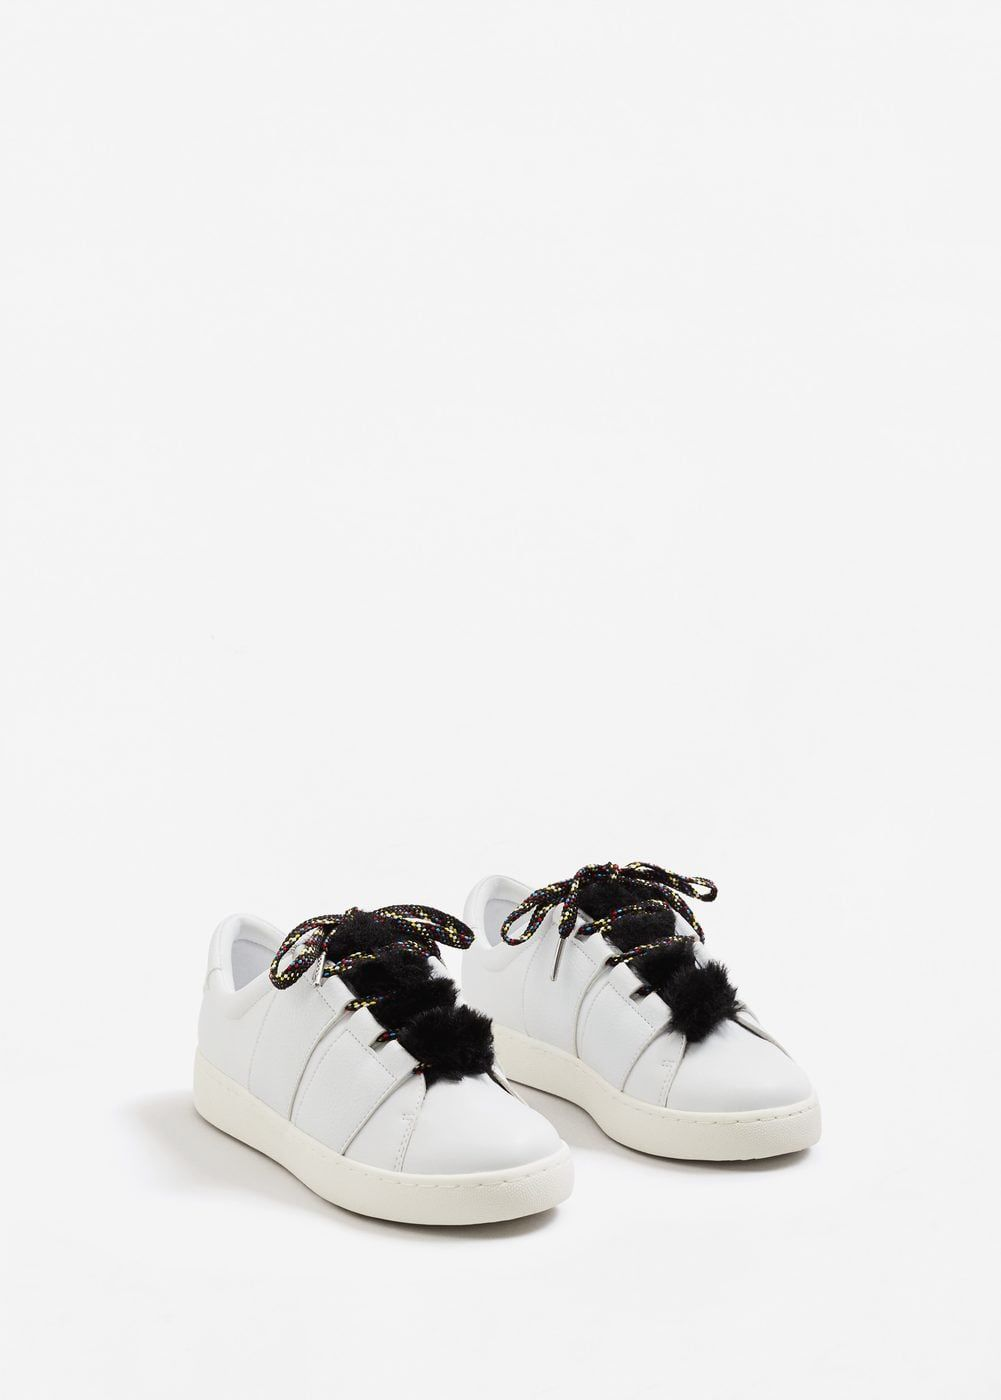 Fur lace up sneakers Woman   Sneakers, Shoes, High top